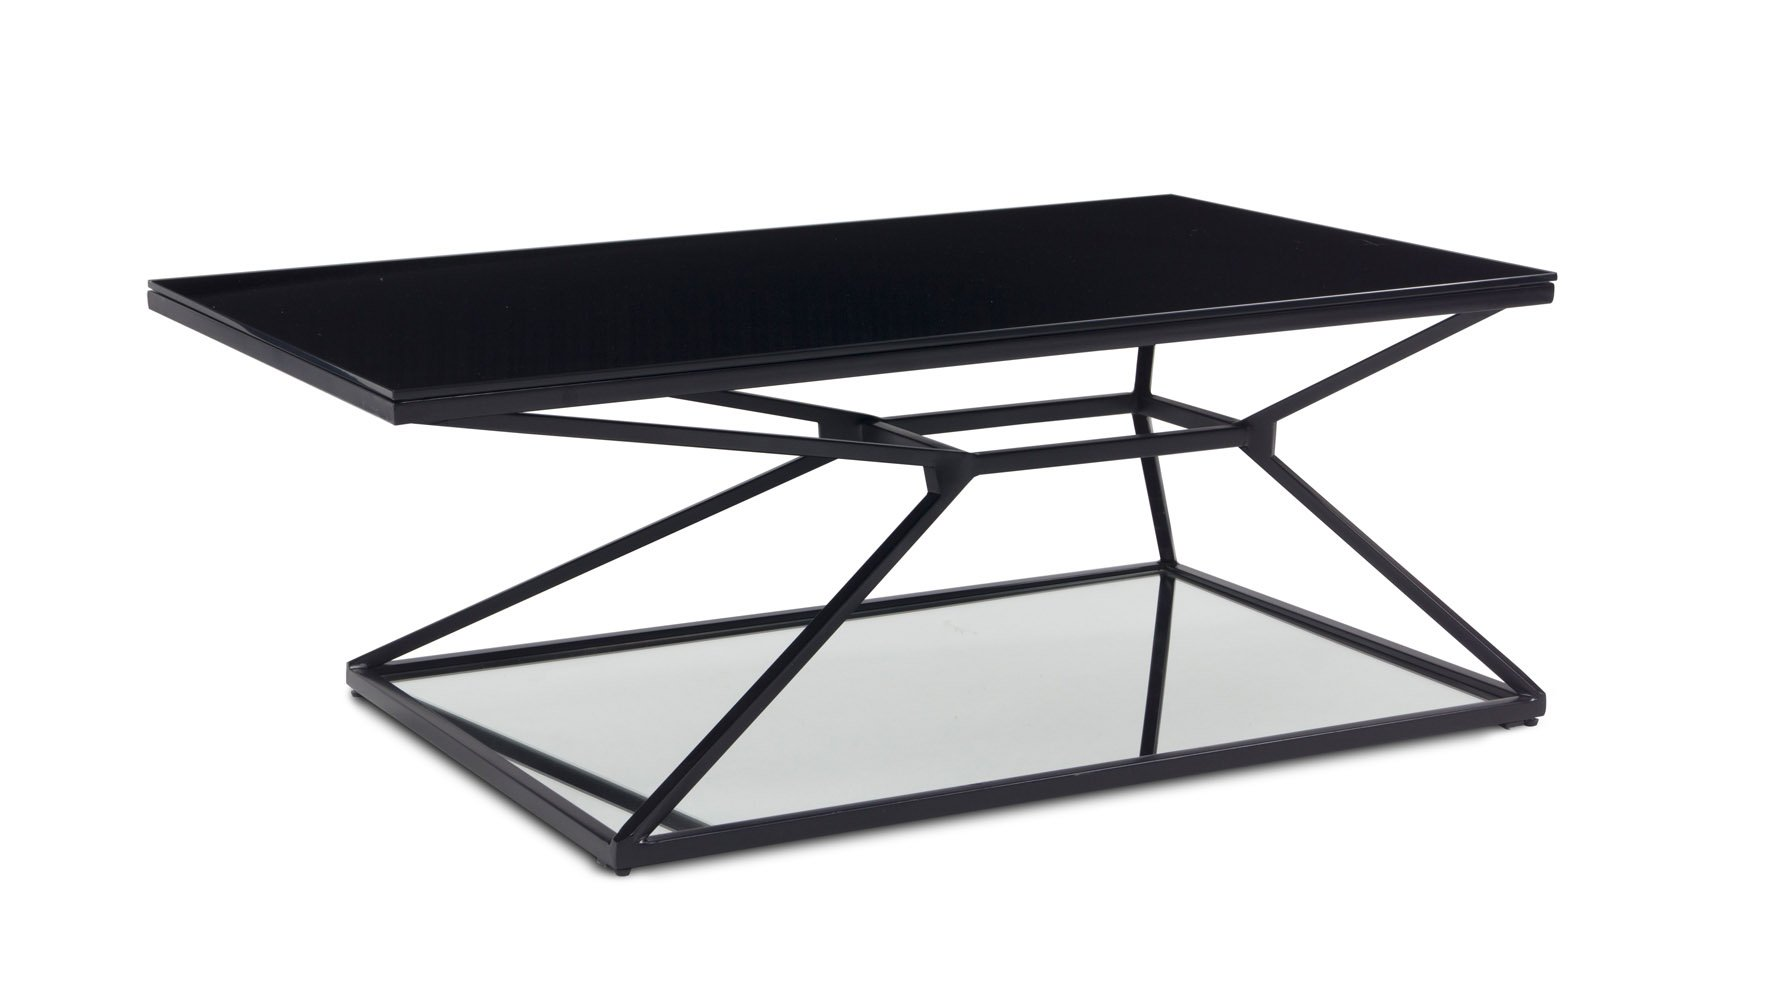 Wedge matte black steel coffee table zuri furniture geotapseo Image collections